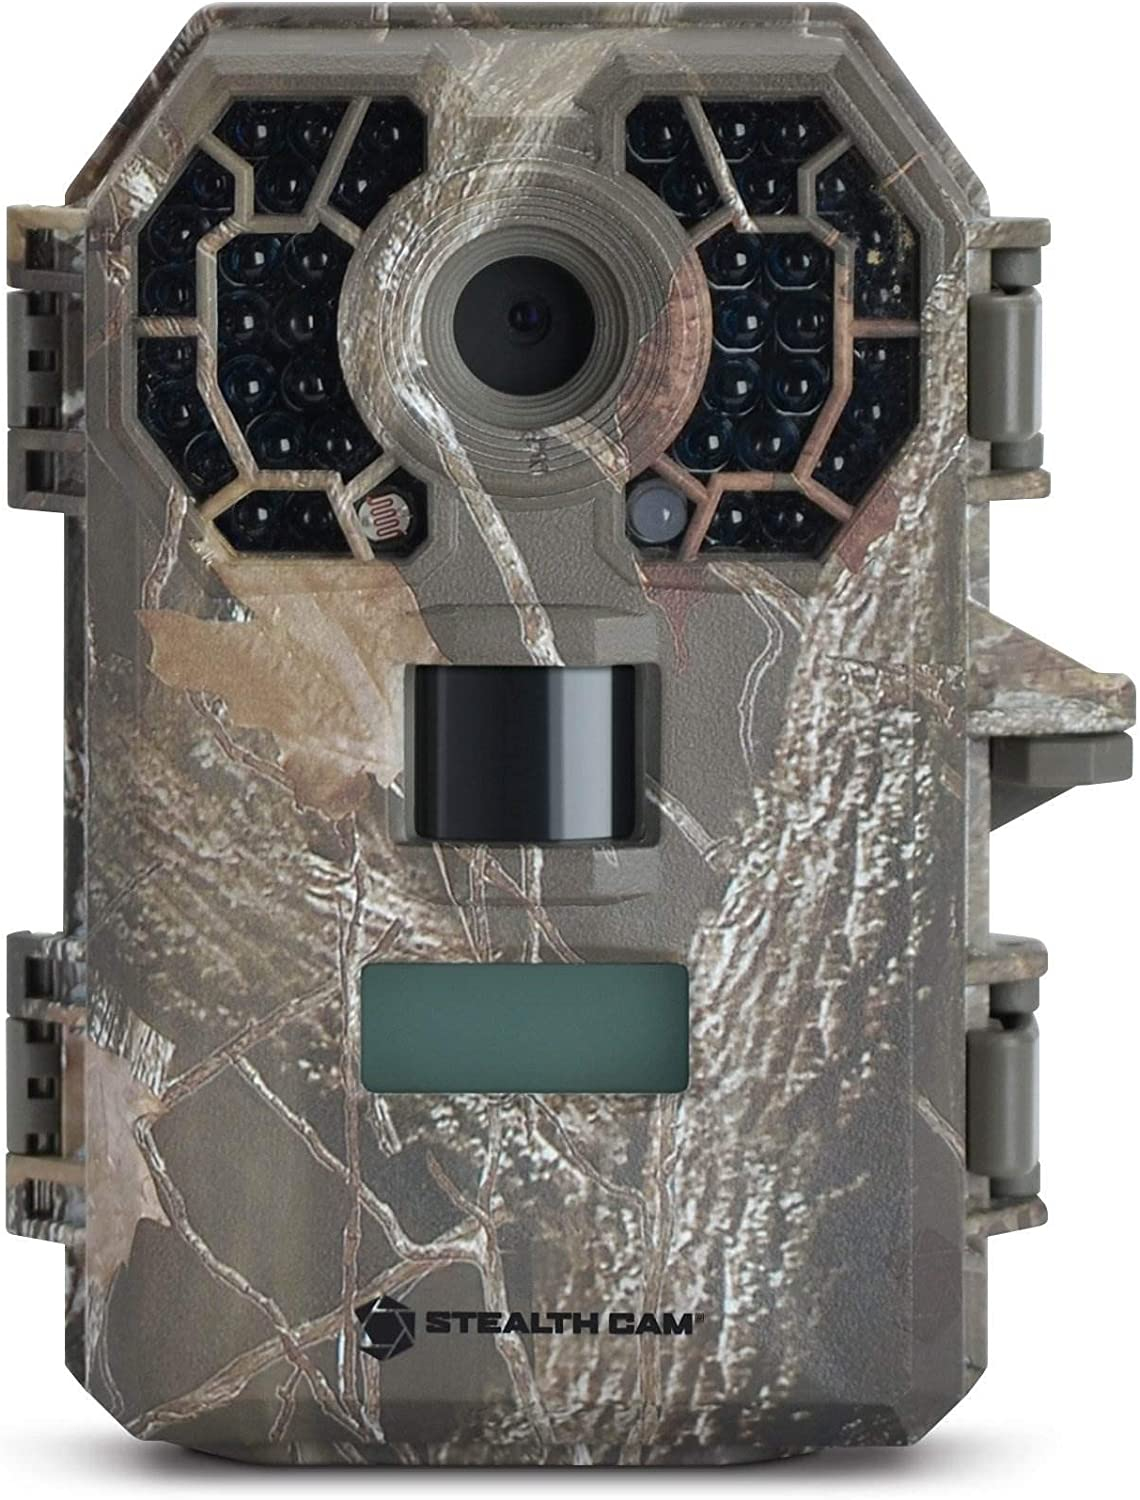 Stealth Cam Double Drop FX Shield Infrared Trail Camera Kit 16mp 60 FT Range for sale online